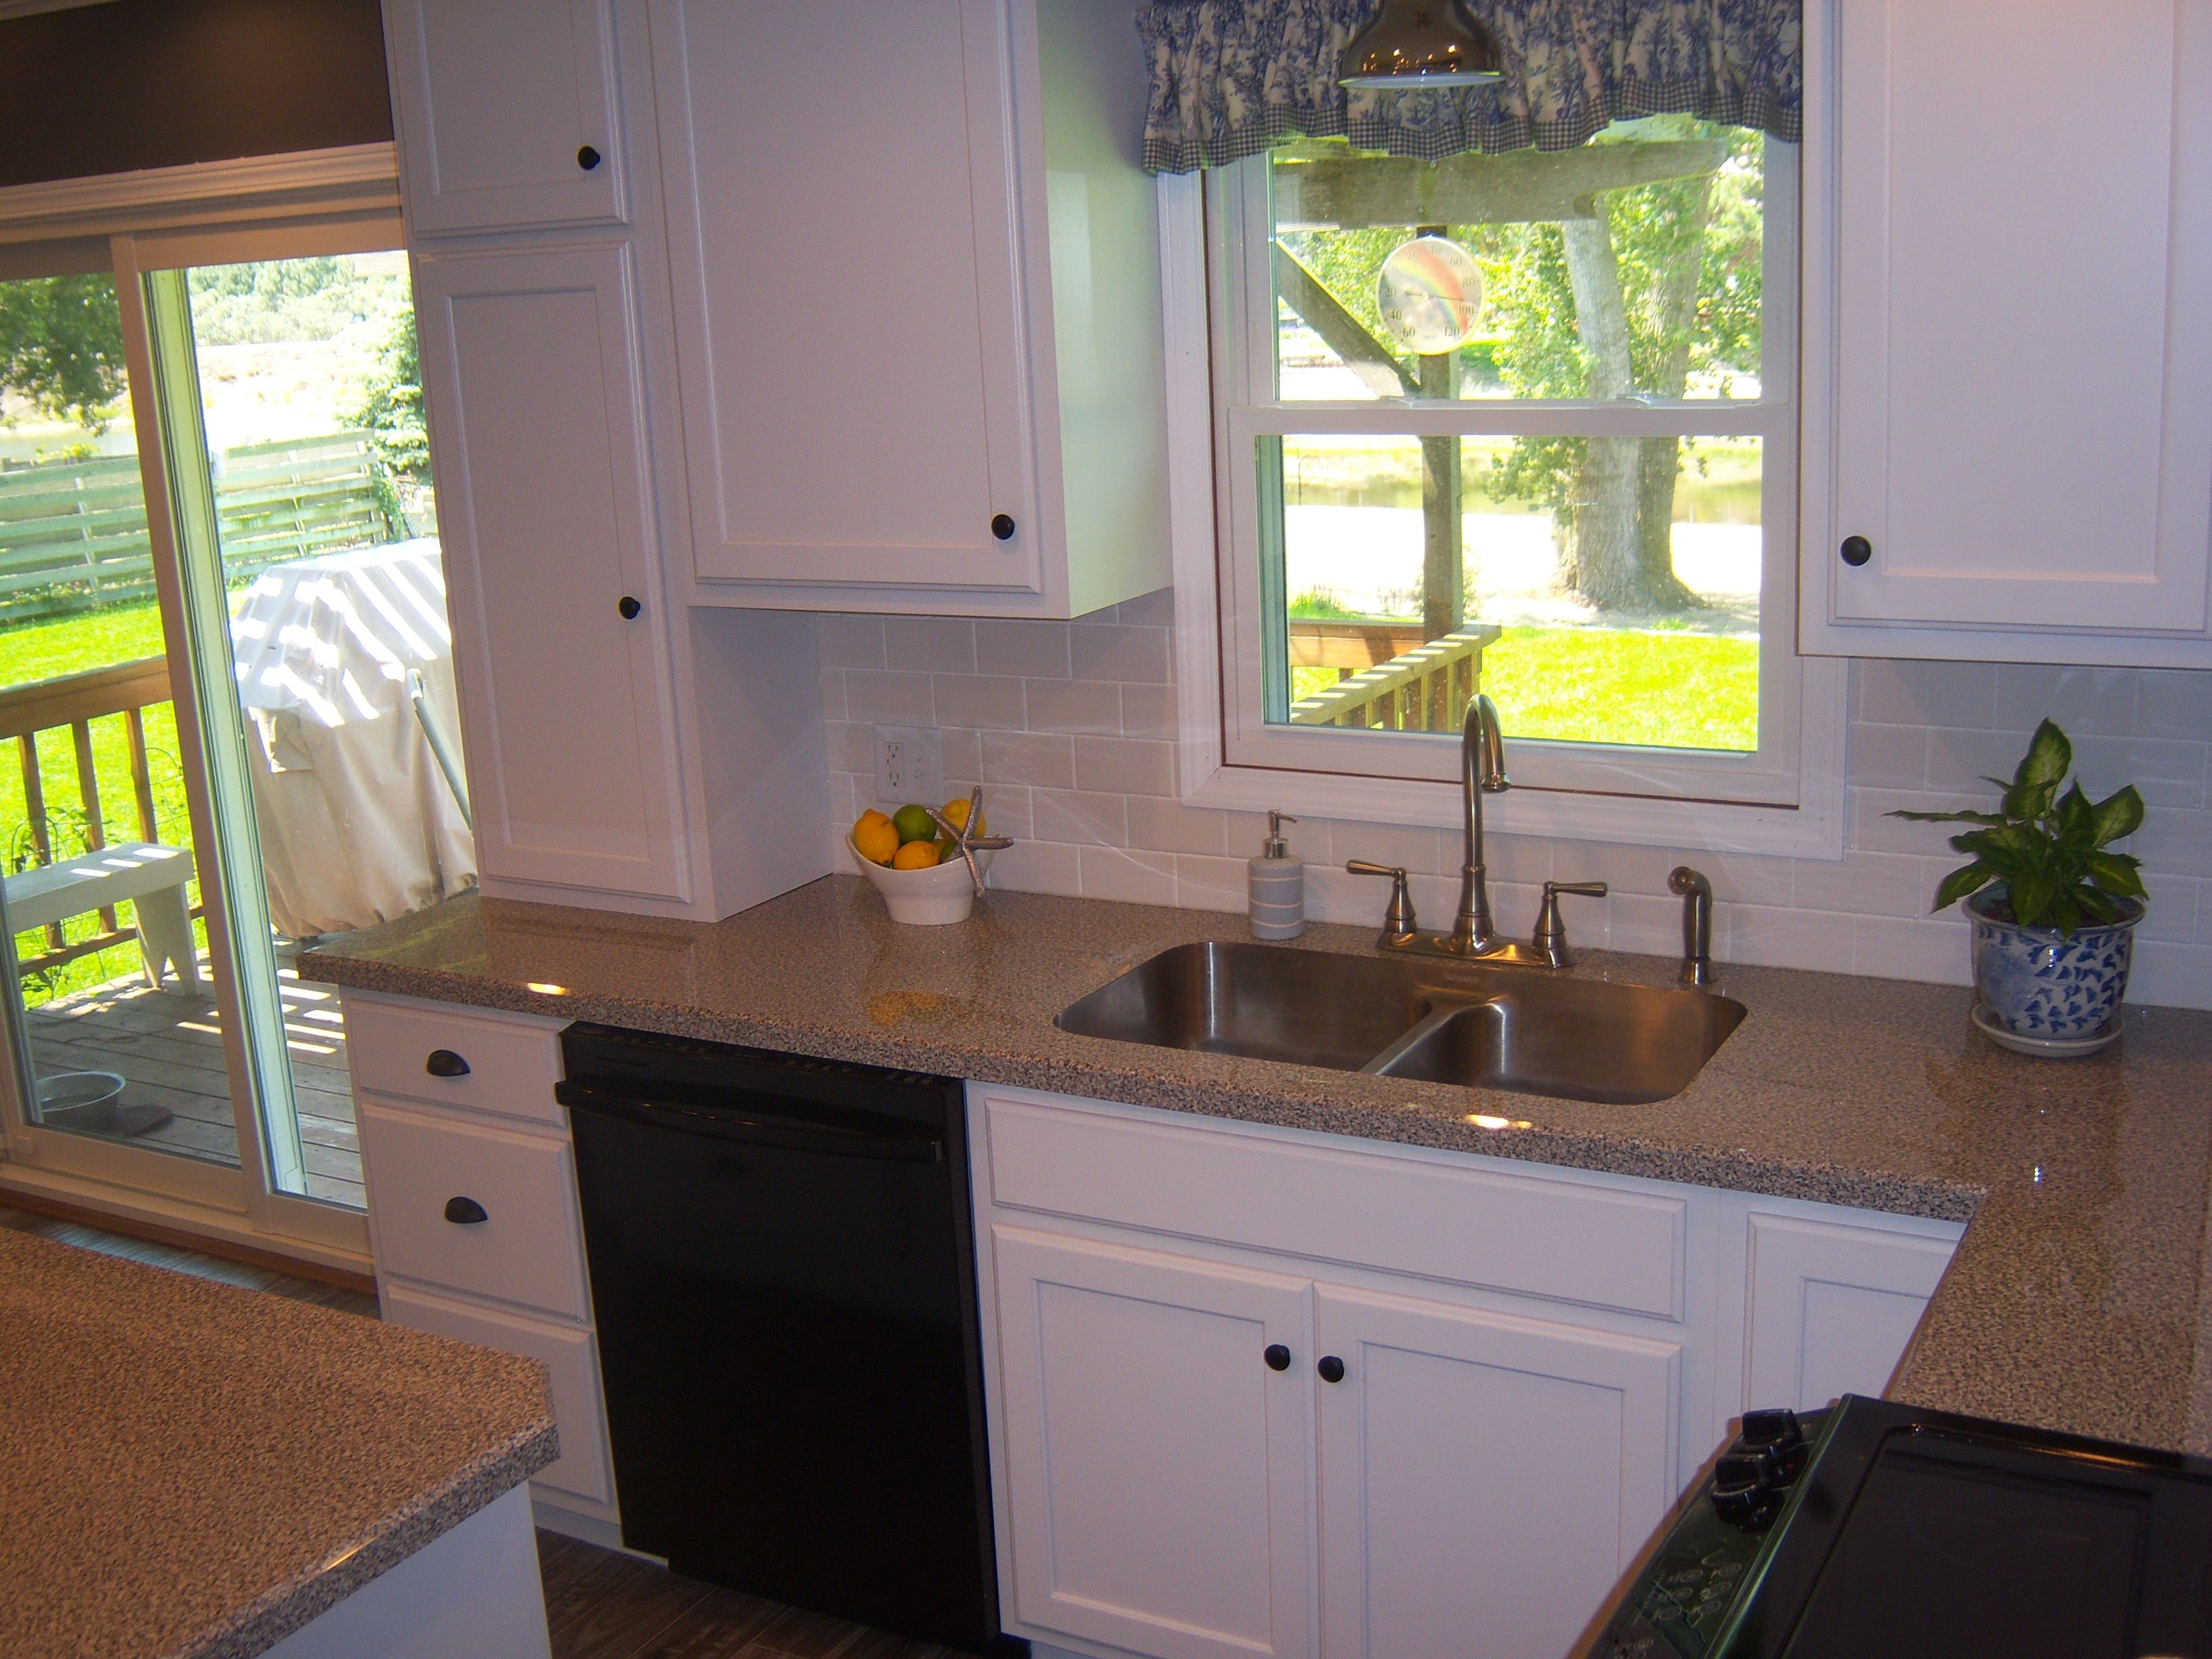 Karran Stainless Steel Undermount Sink In Wilsonart Laminate Countertop.